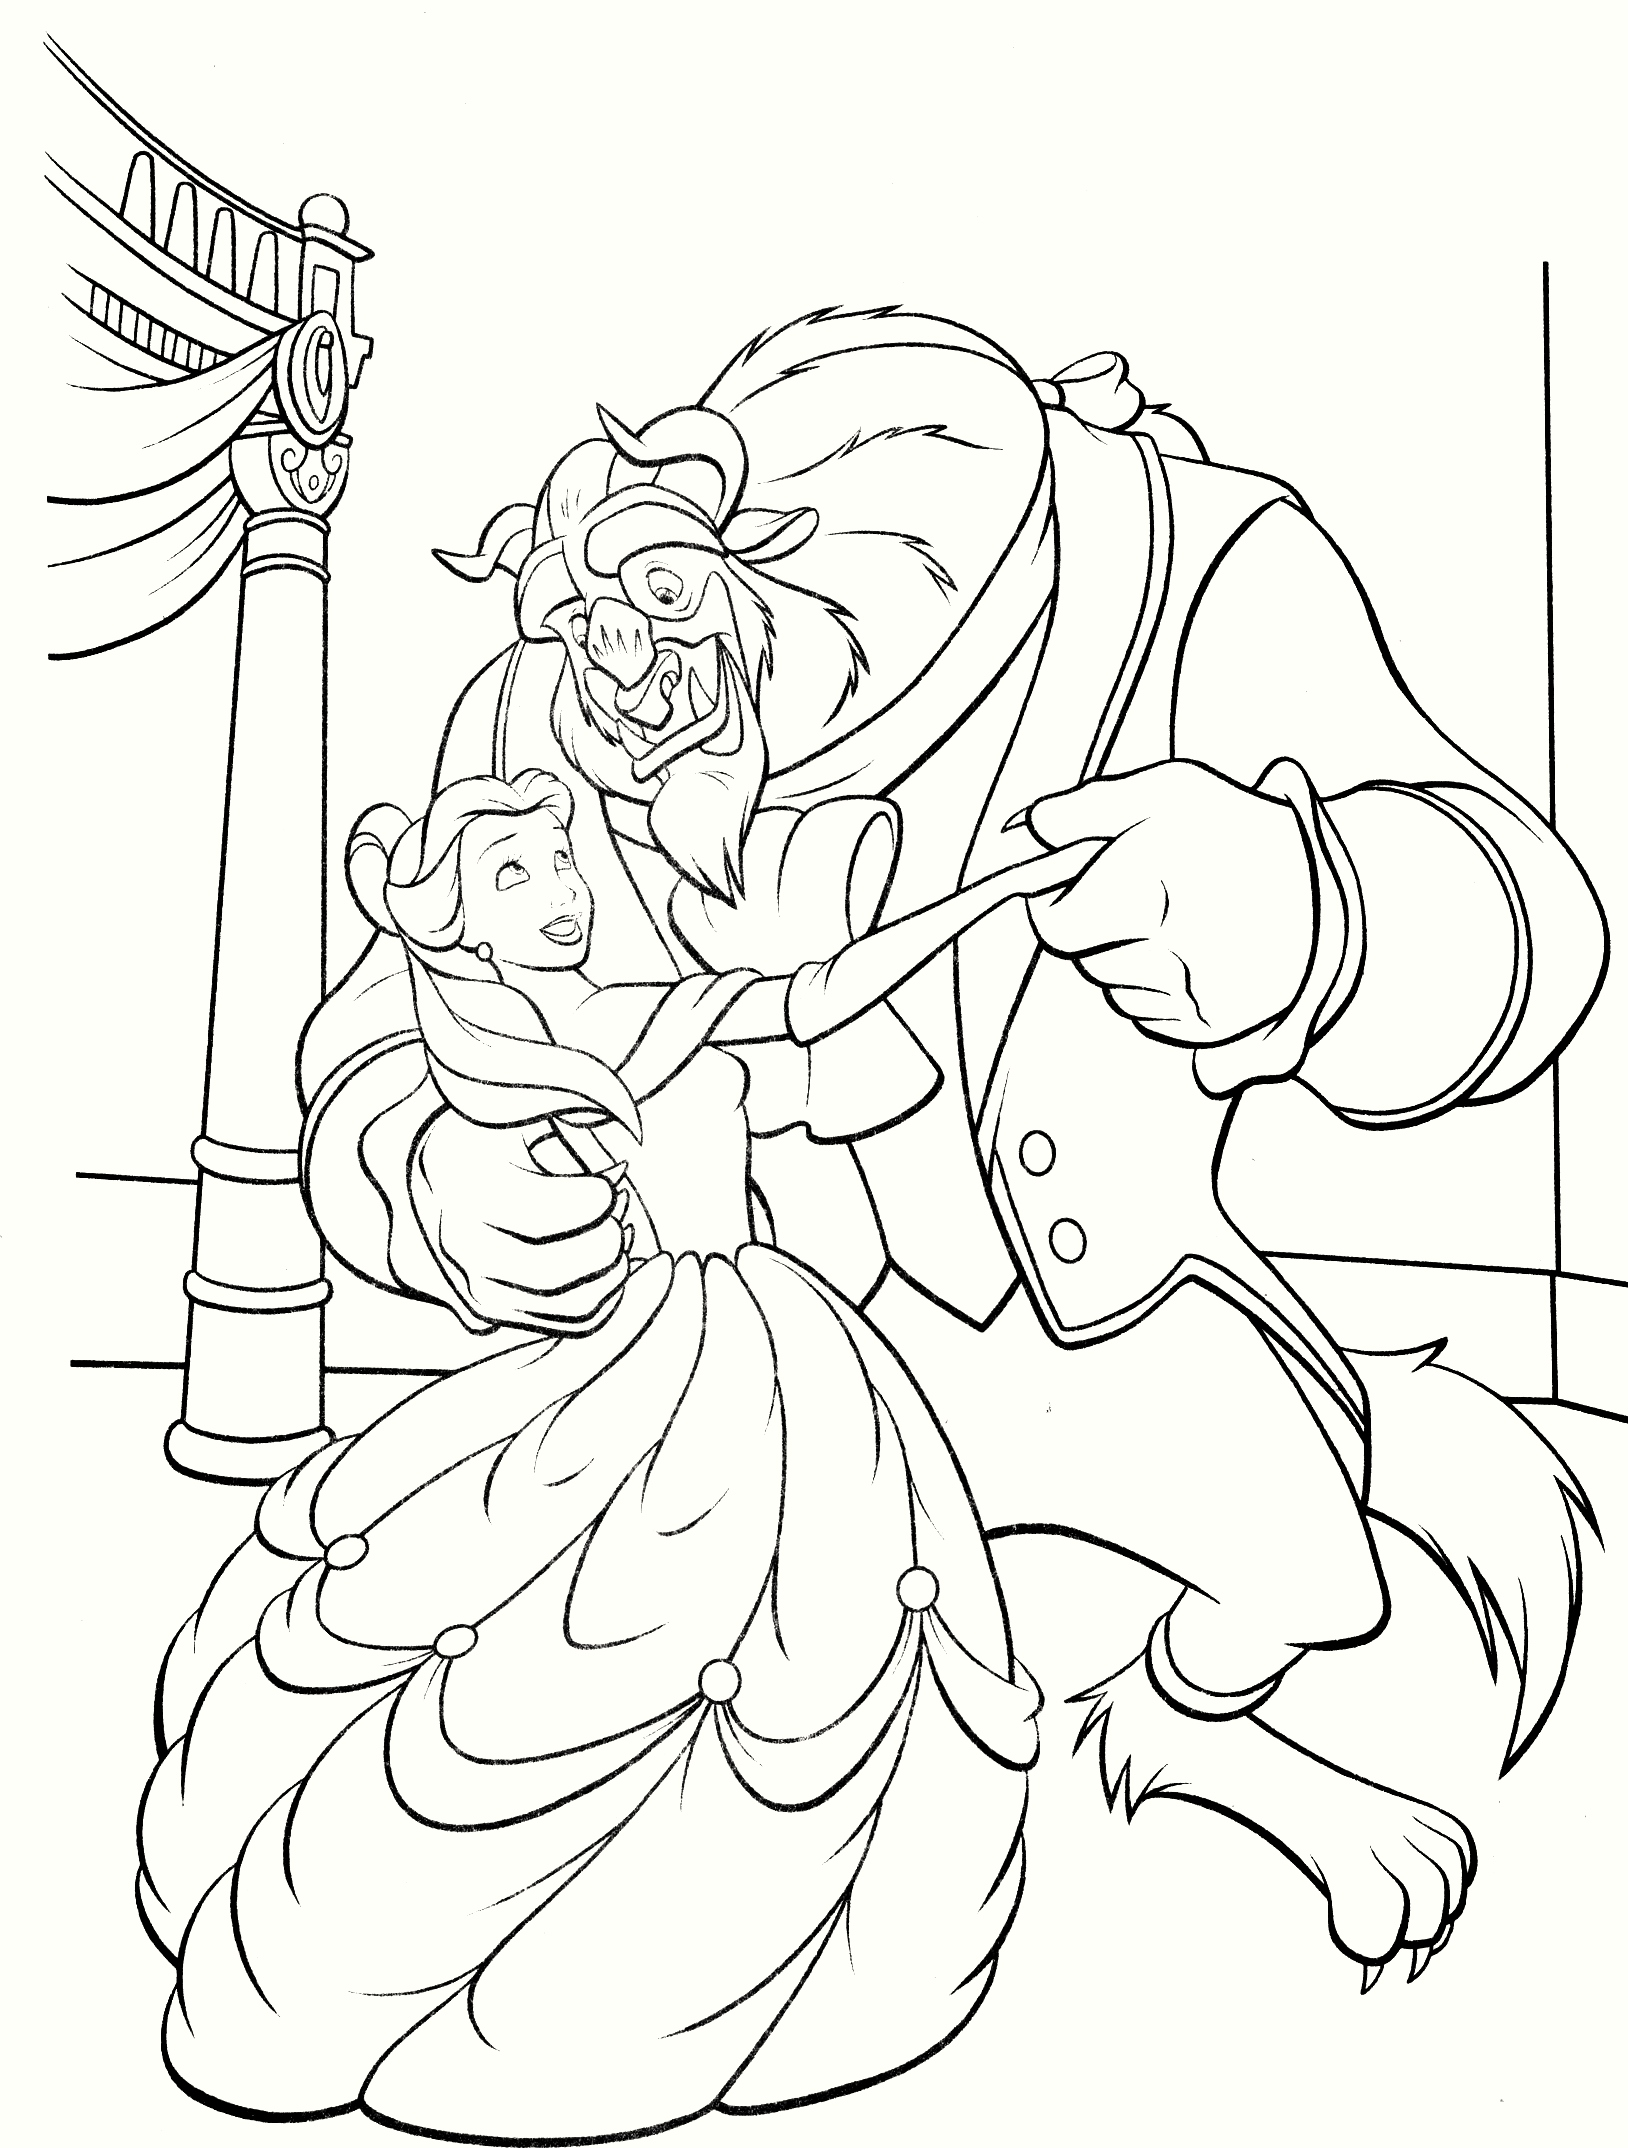 beauty-and-the-beast-are-dancing-coloring-pages